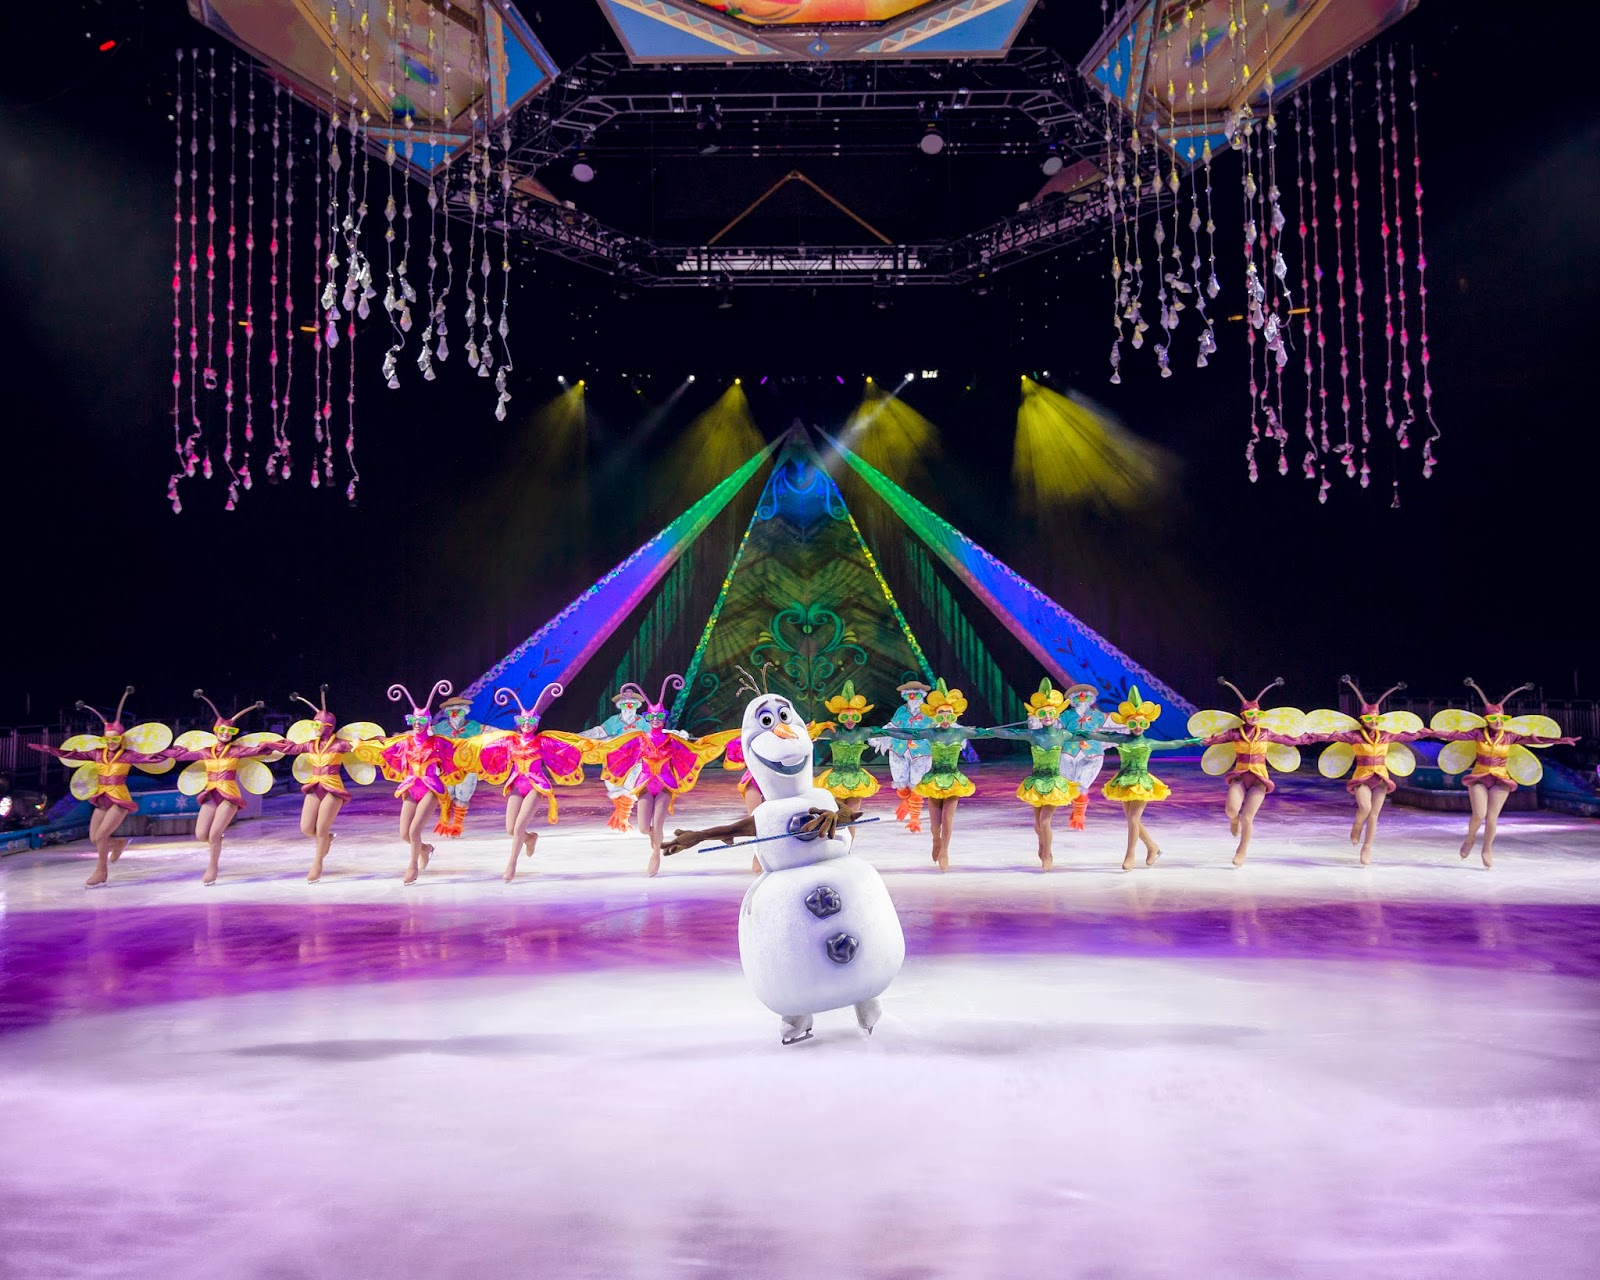 Olaf on Ice Tickets for Disney on Ice Presents Frozen are Perfect Stocking Stuffers!  #DisneyonIceInsider